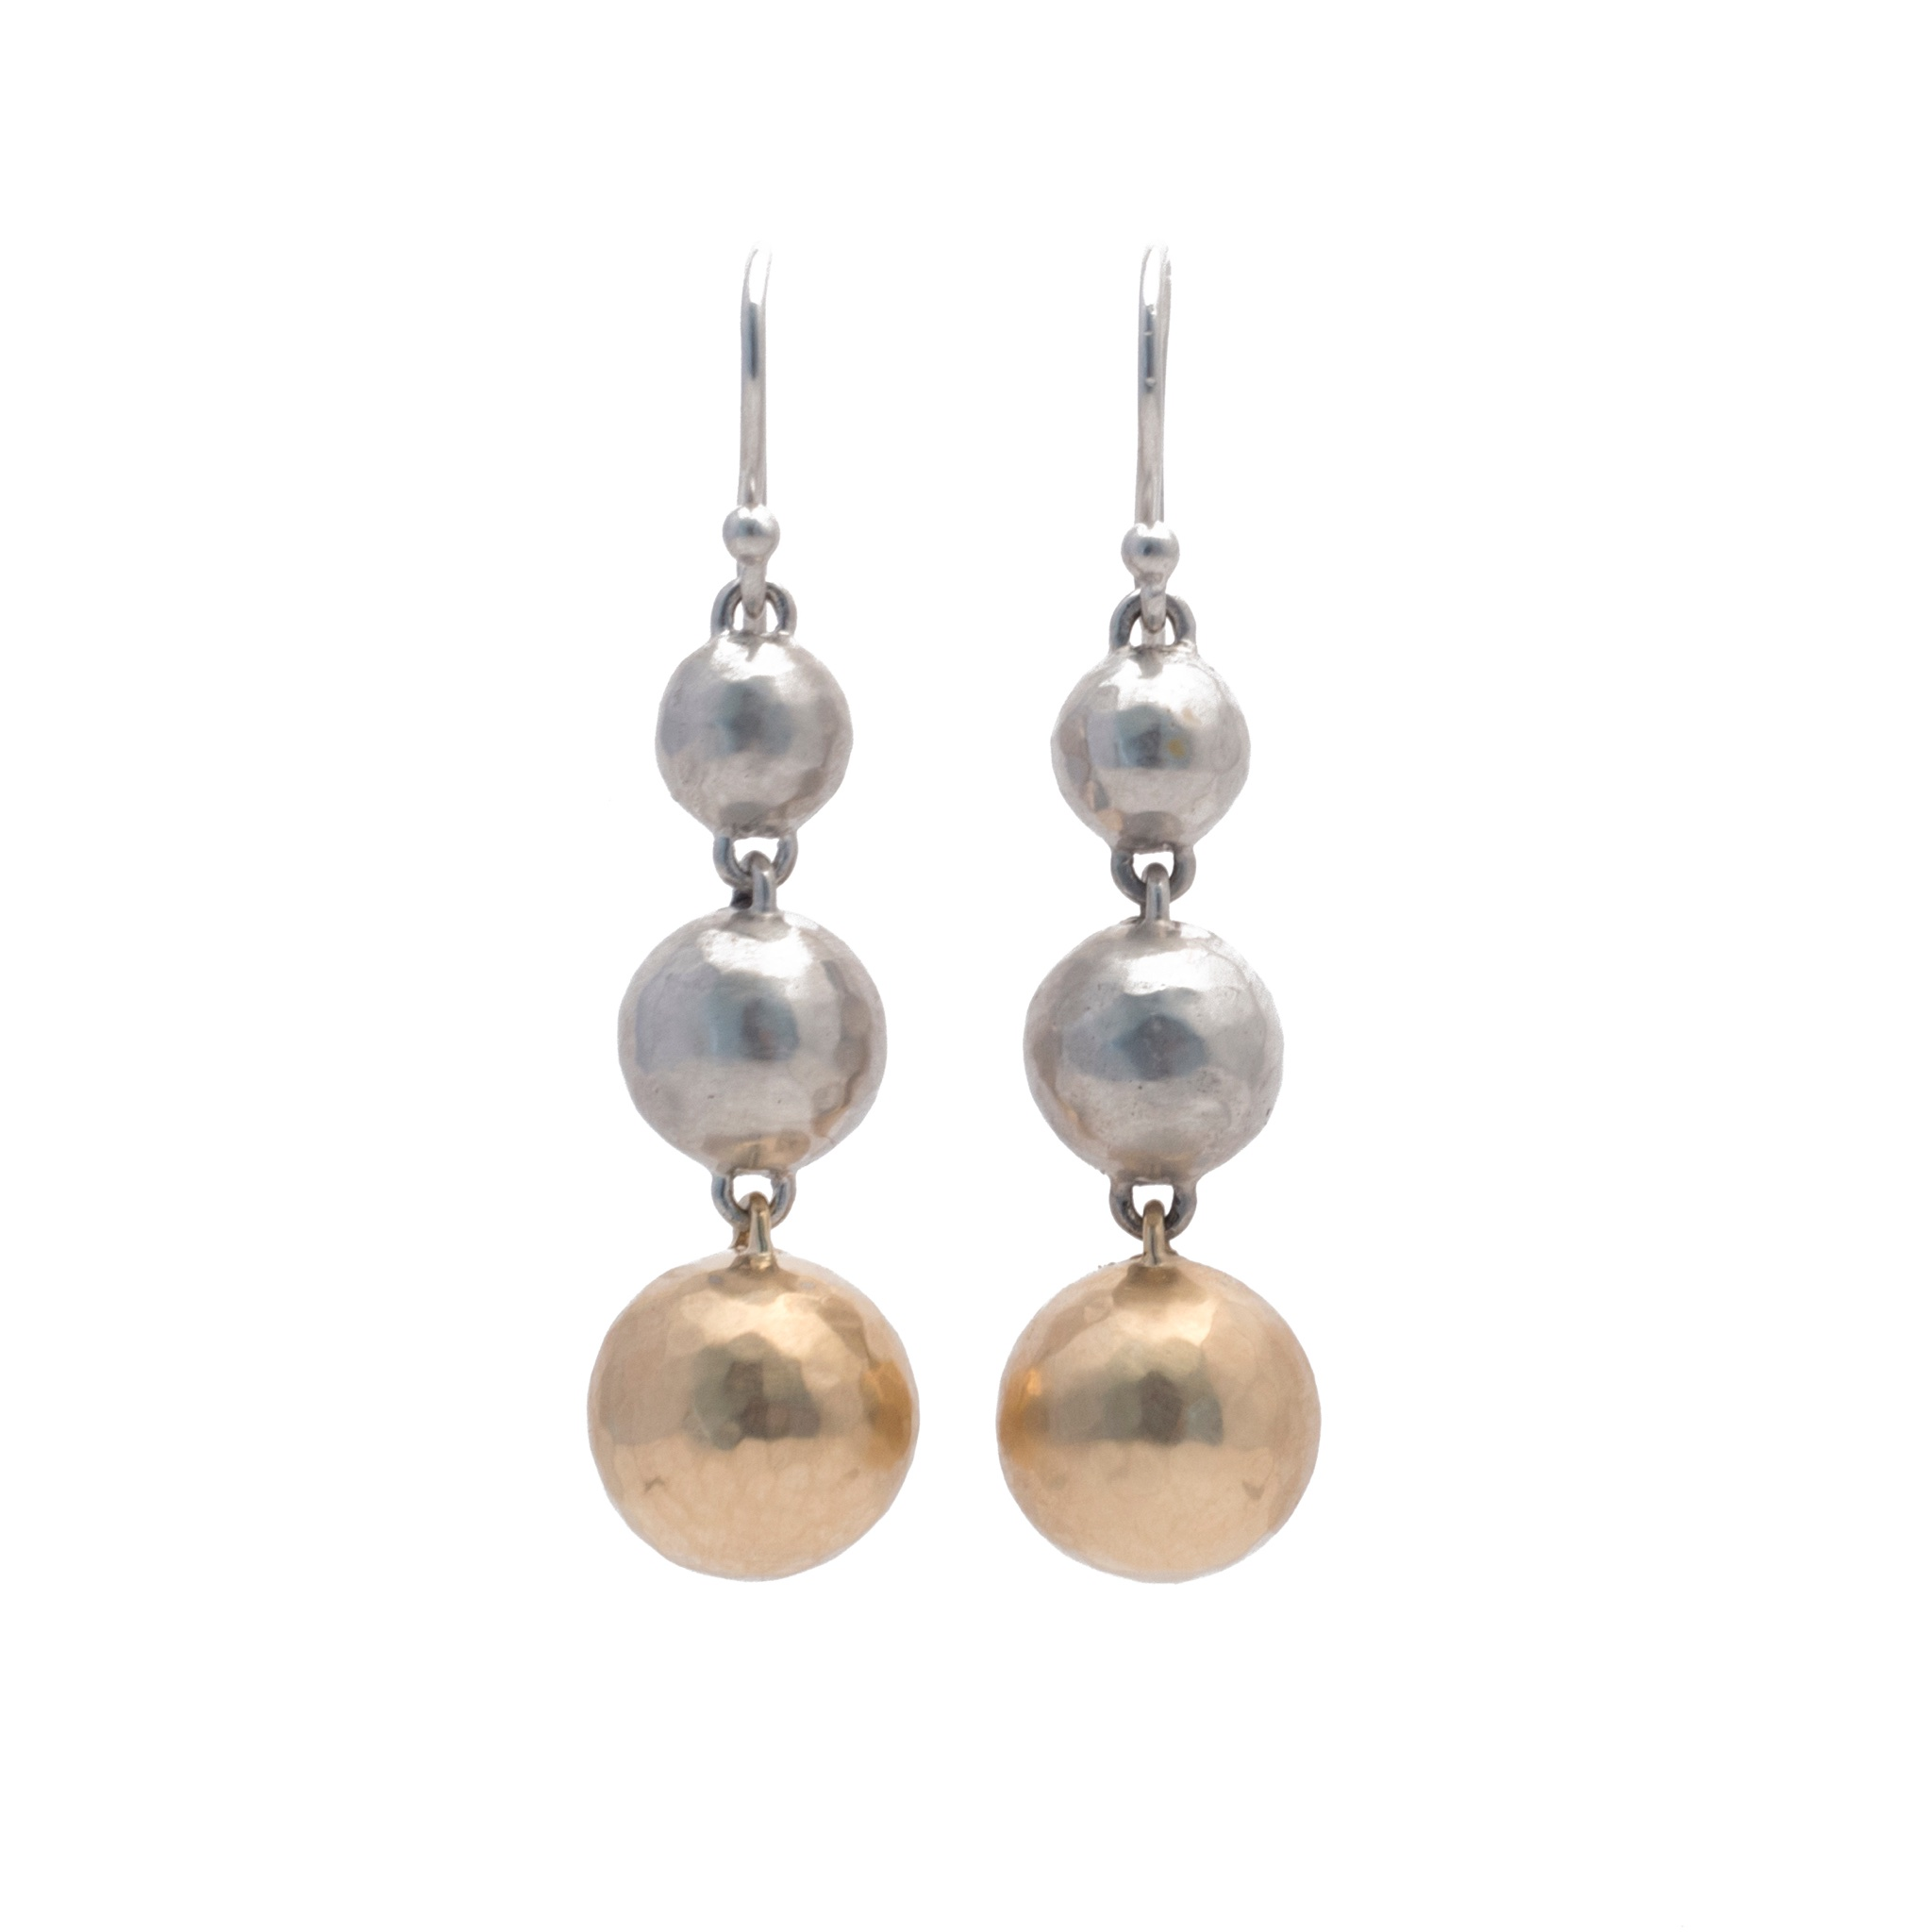 130056-14K gold silver snowfall earrings